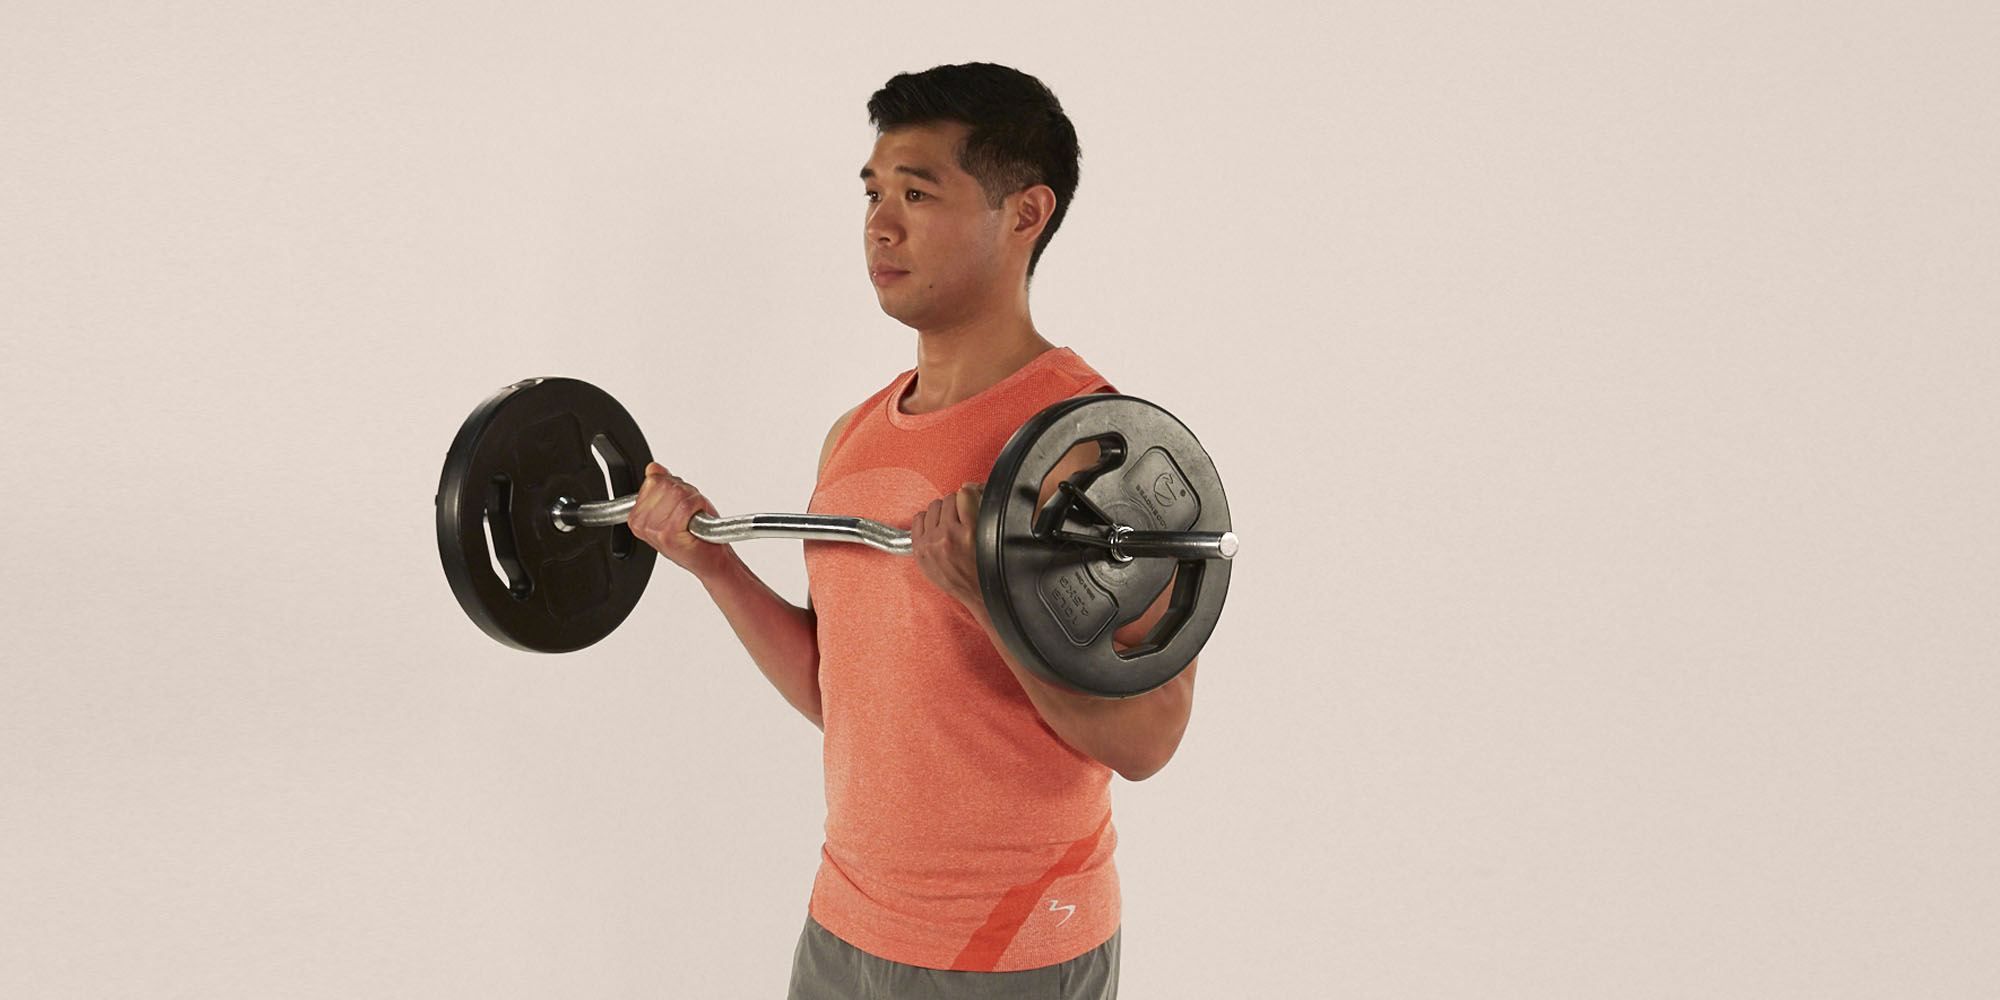 Switch Up Your Biceps Routine with 10 of the Best Exercises for Size and Strength